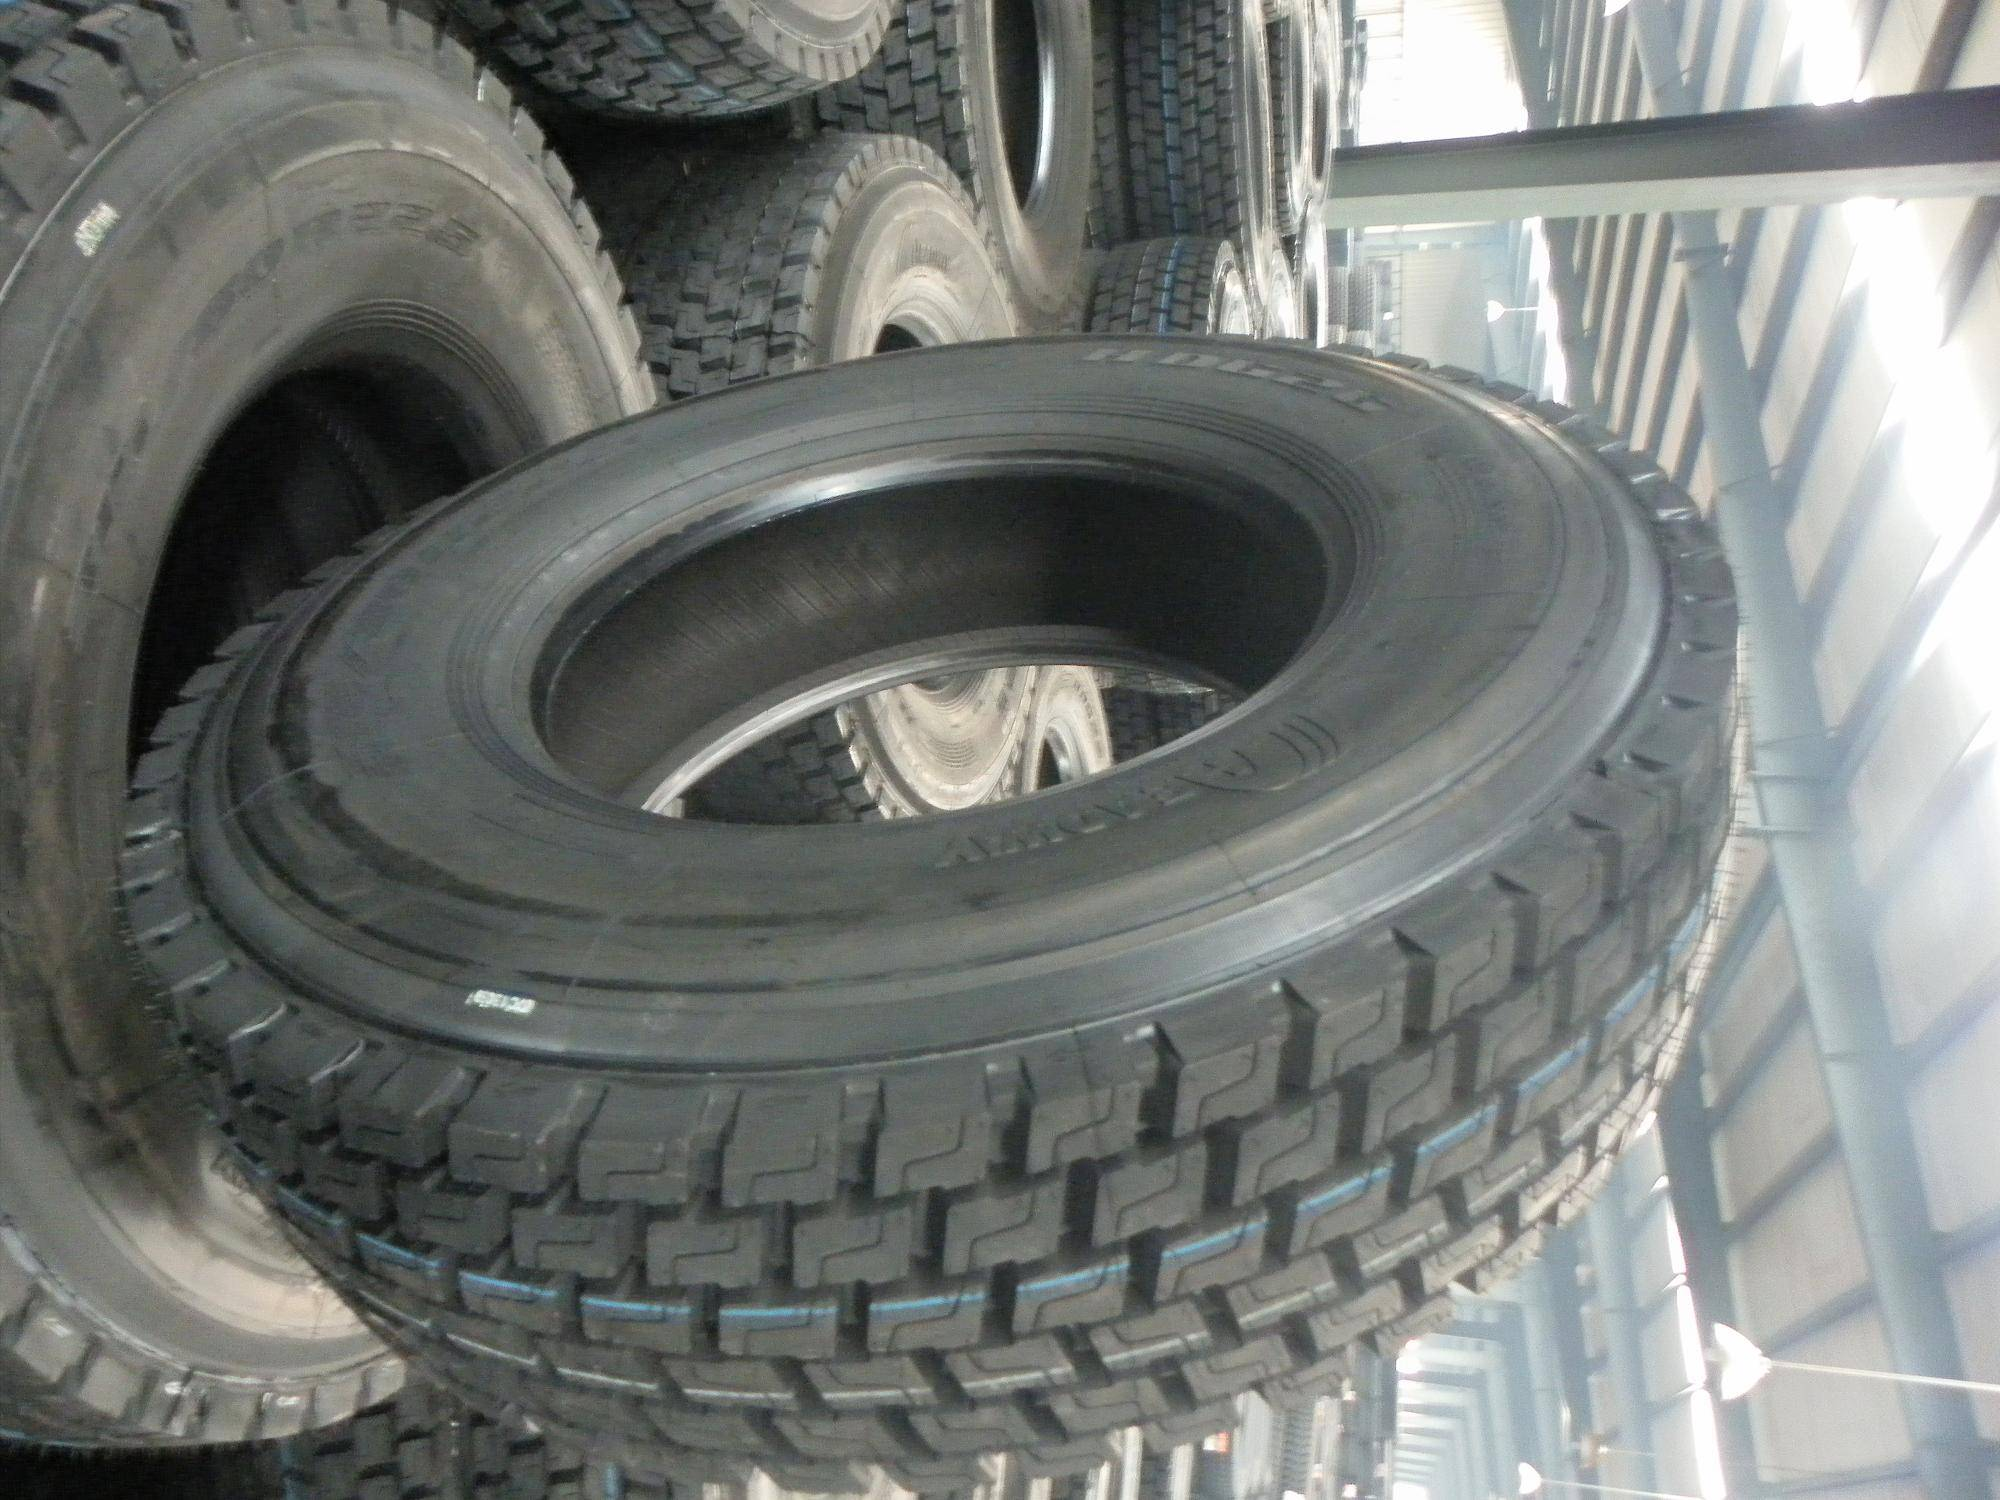 What are some reviews of Headway tires?